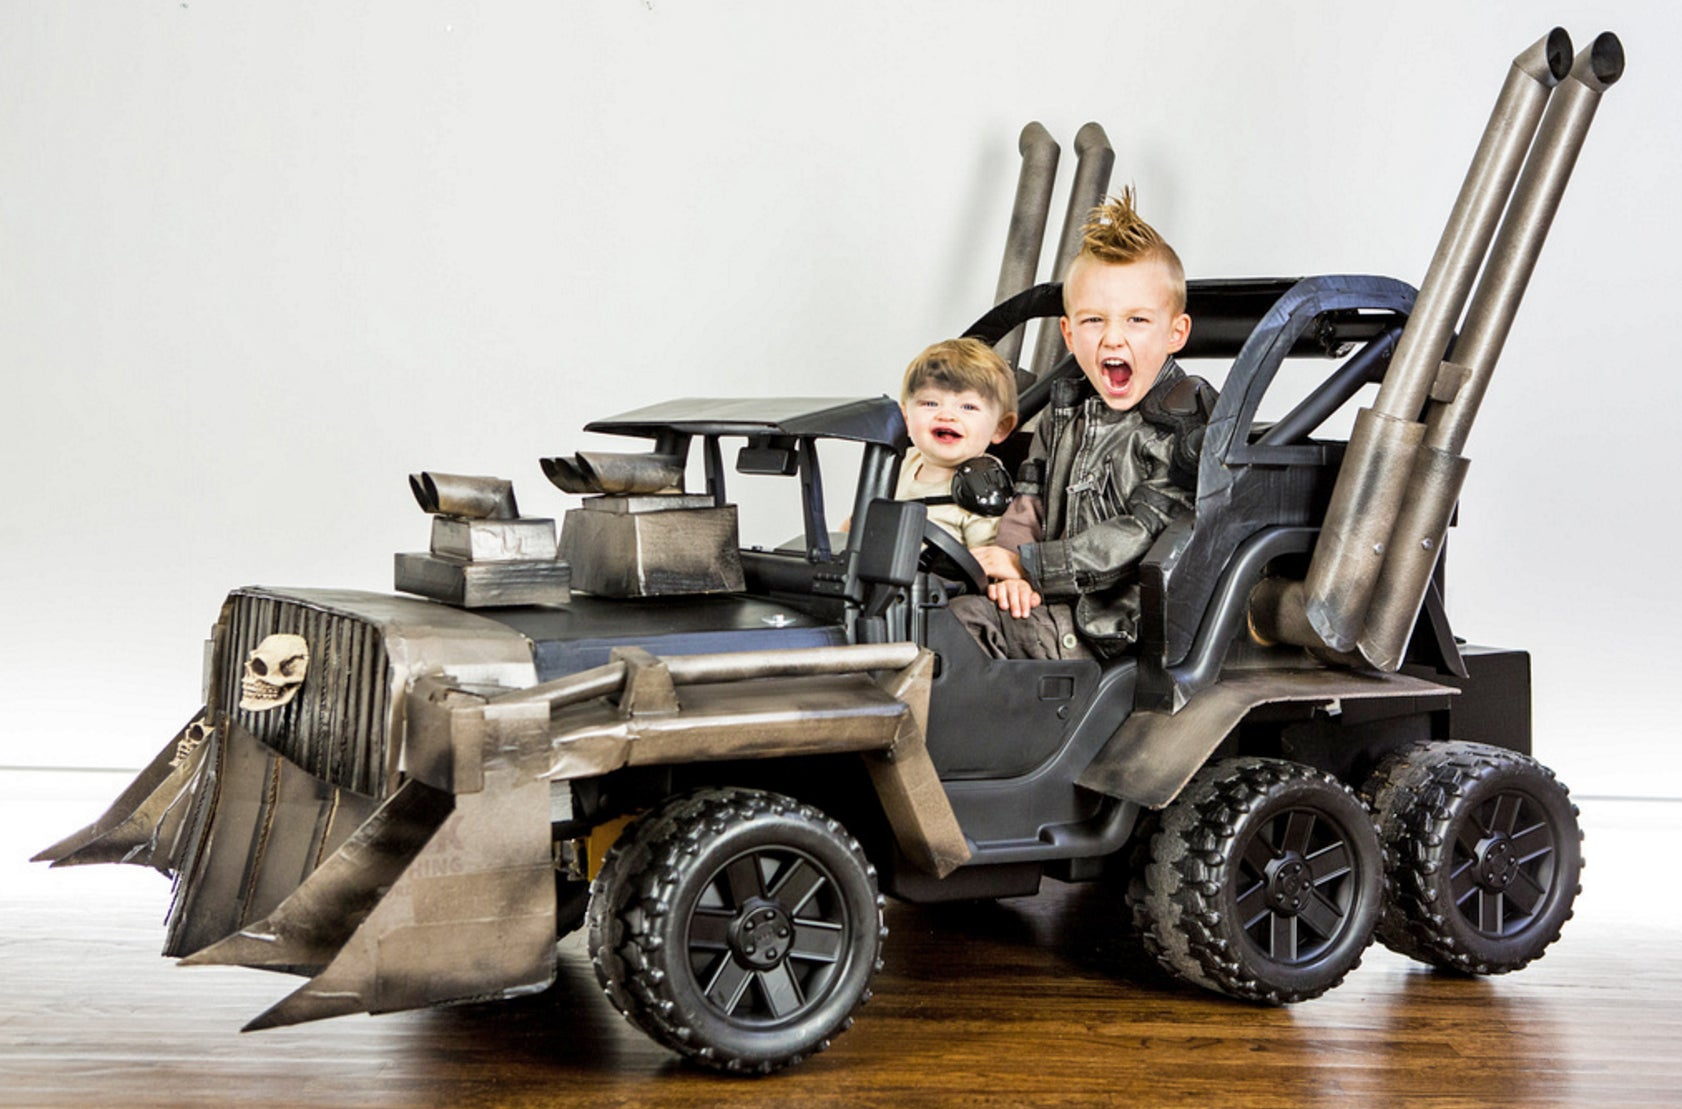 Your Halloween Costume Will Never Be As Amazing As This Mad Max Power Wheels on how to build an electric car guide